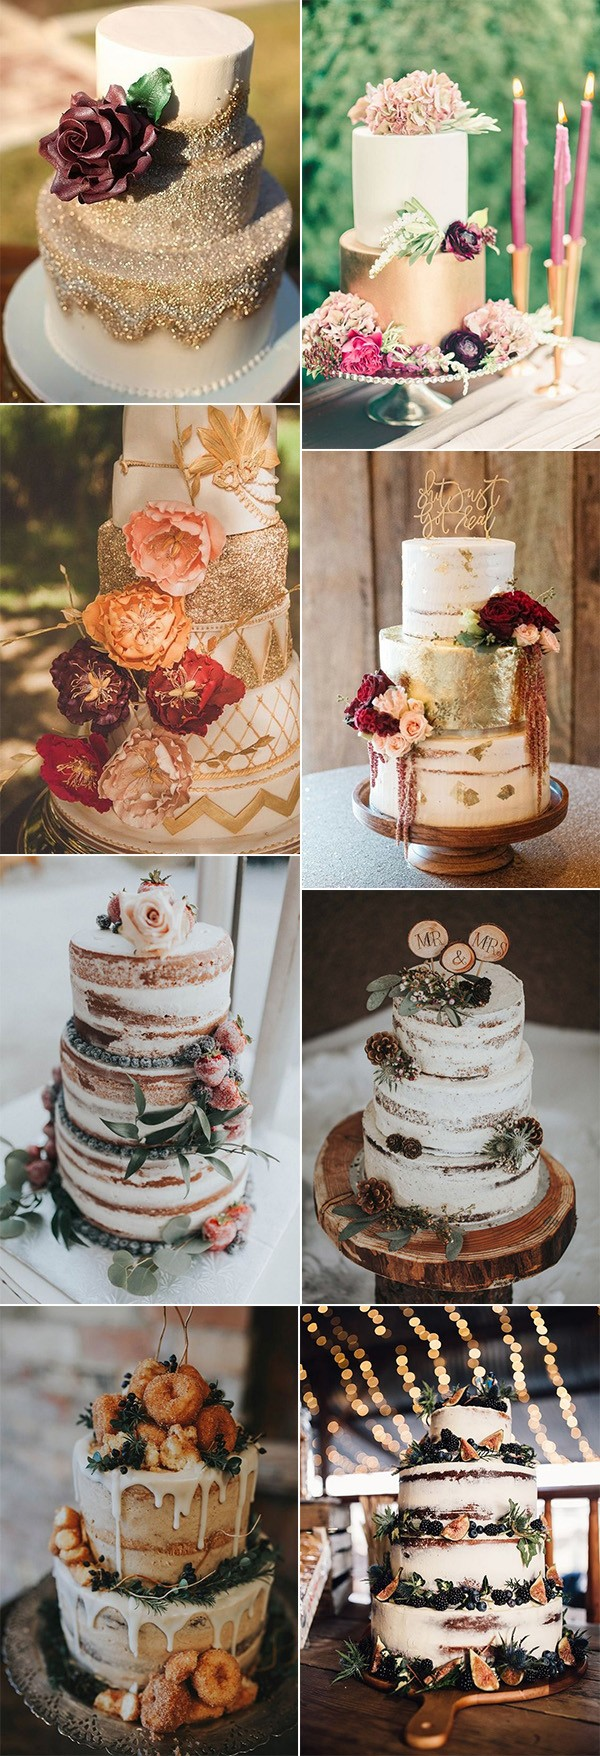 chic fall wedding cakes for 2018 trends